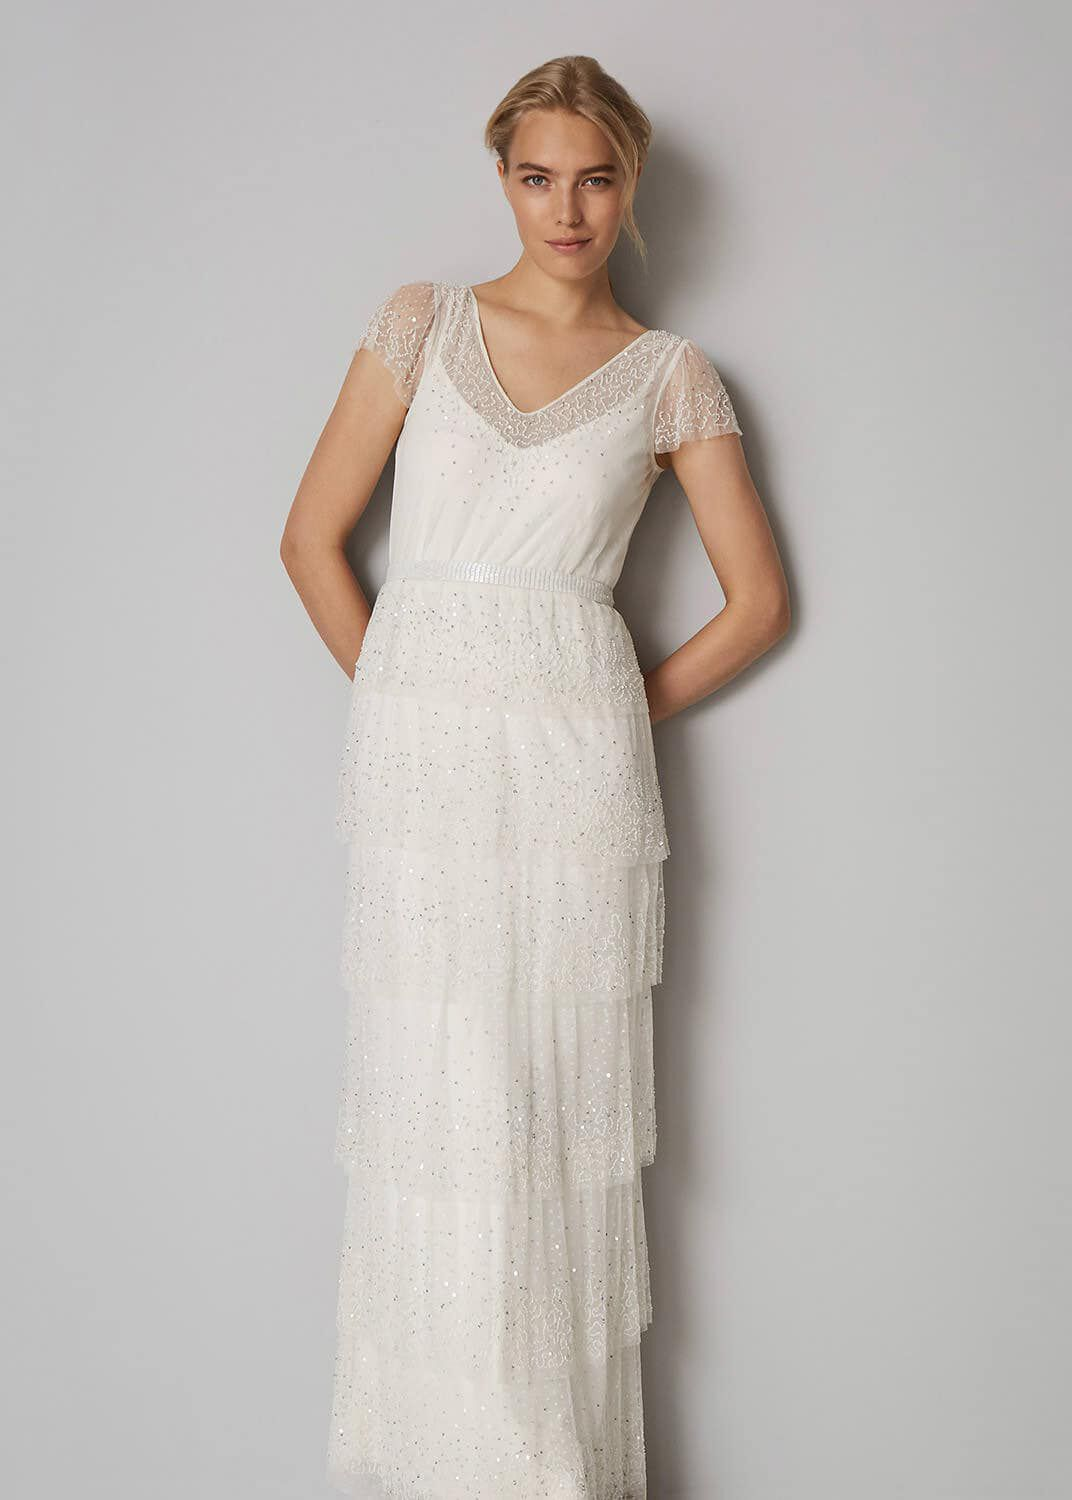 1920s Wedding Dresses- Art Deco Wedding Dress, Gatsby Wedding Dress Phase Eight Nyelle Layered Wedding Dress Cream Maxi £195.00 AT vintagedancer.com